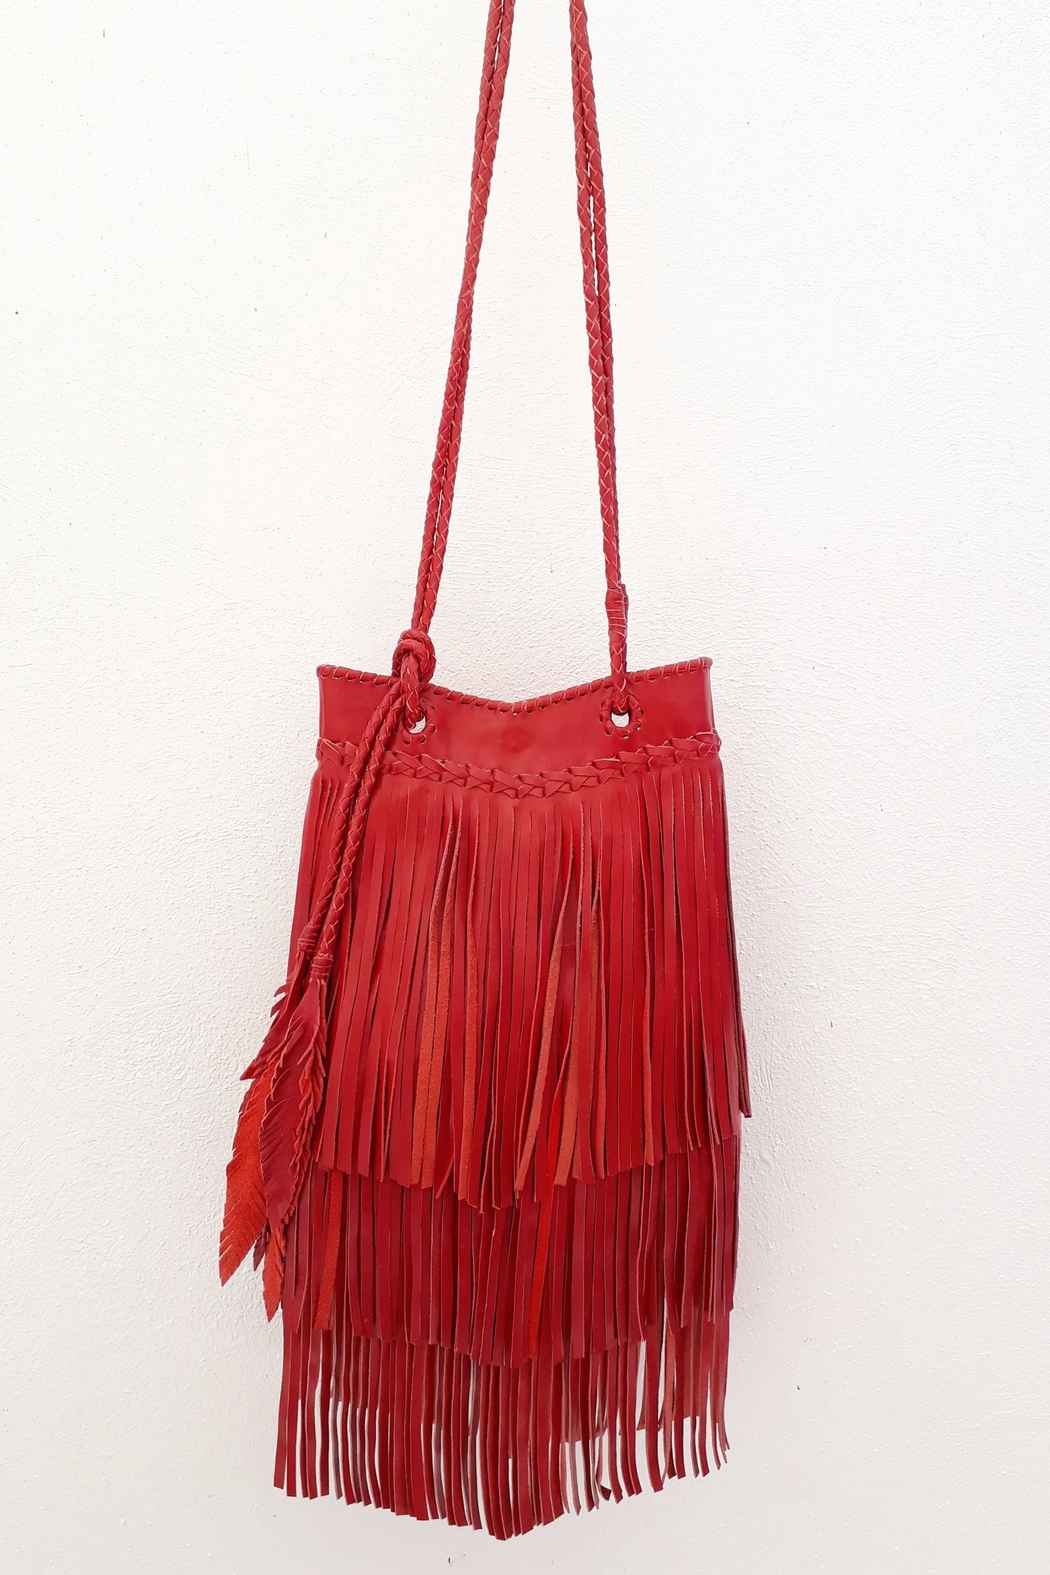 Areias Leather Red Leather Bag - Main Image